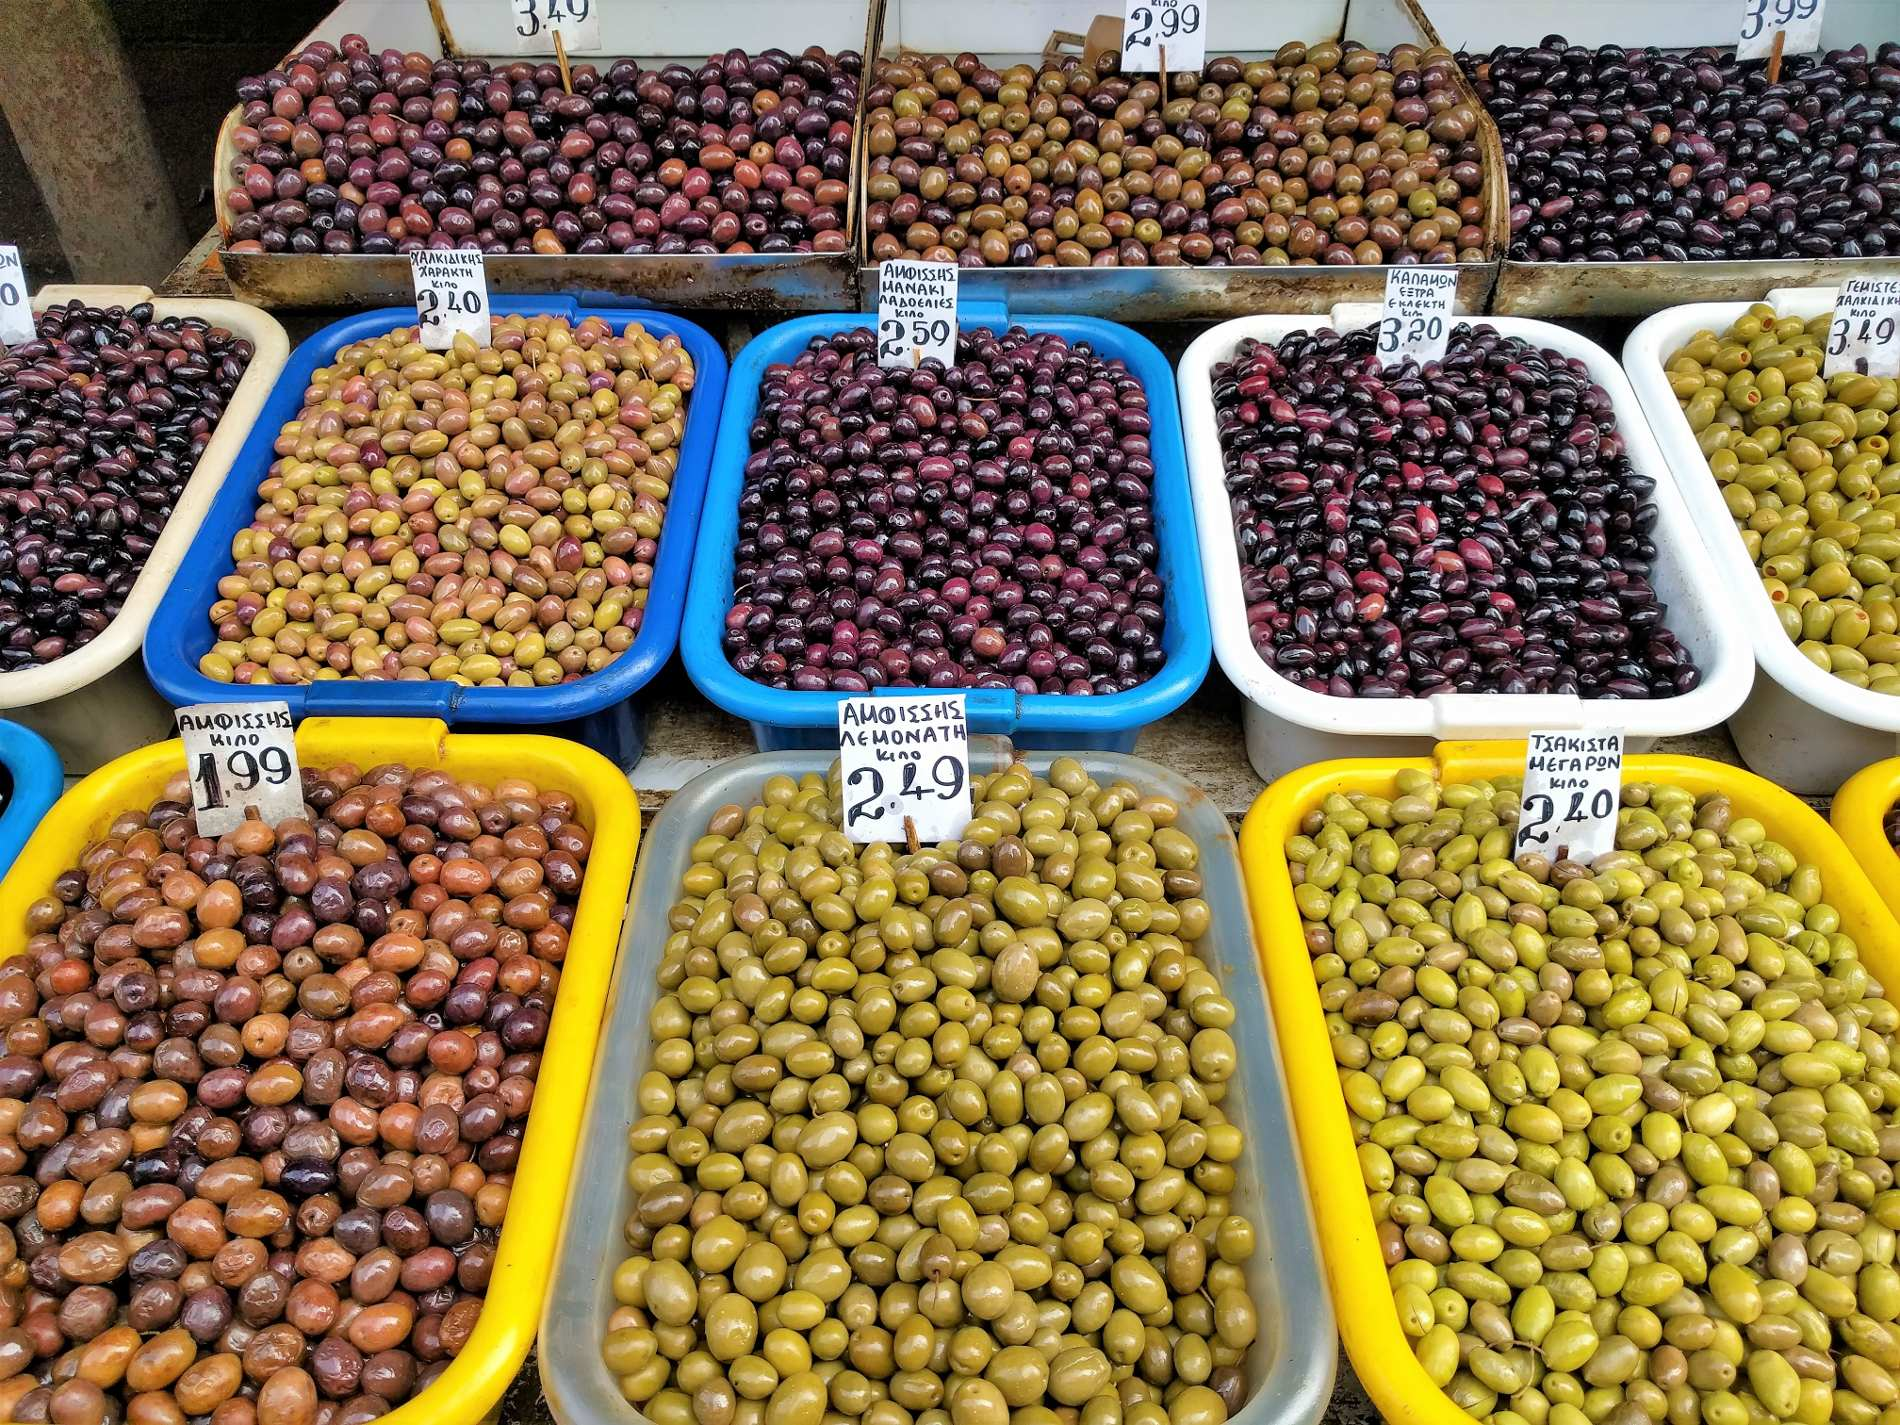 Try authentic Greek products while strolling around in one of the many open-air food markets in Greece.